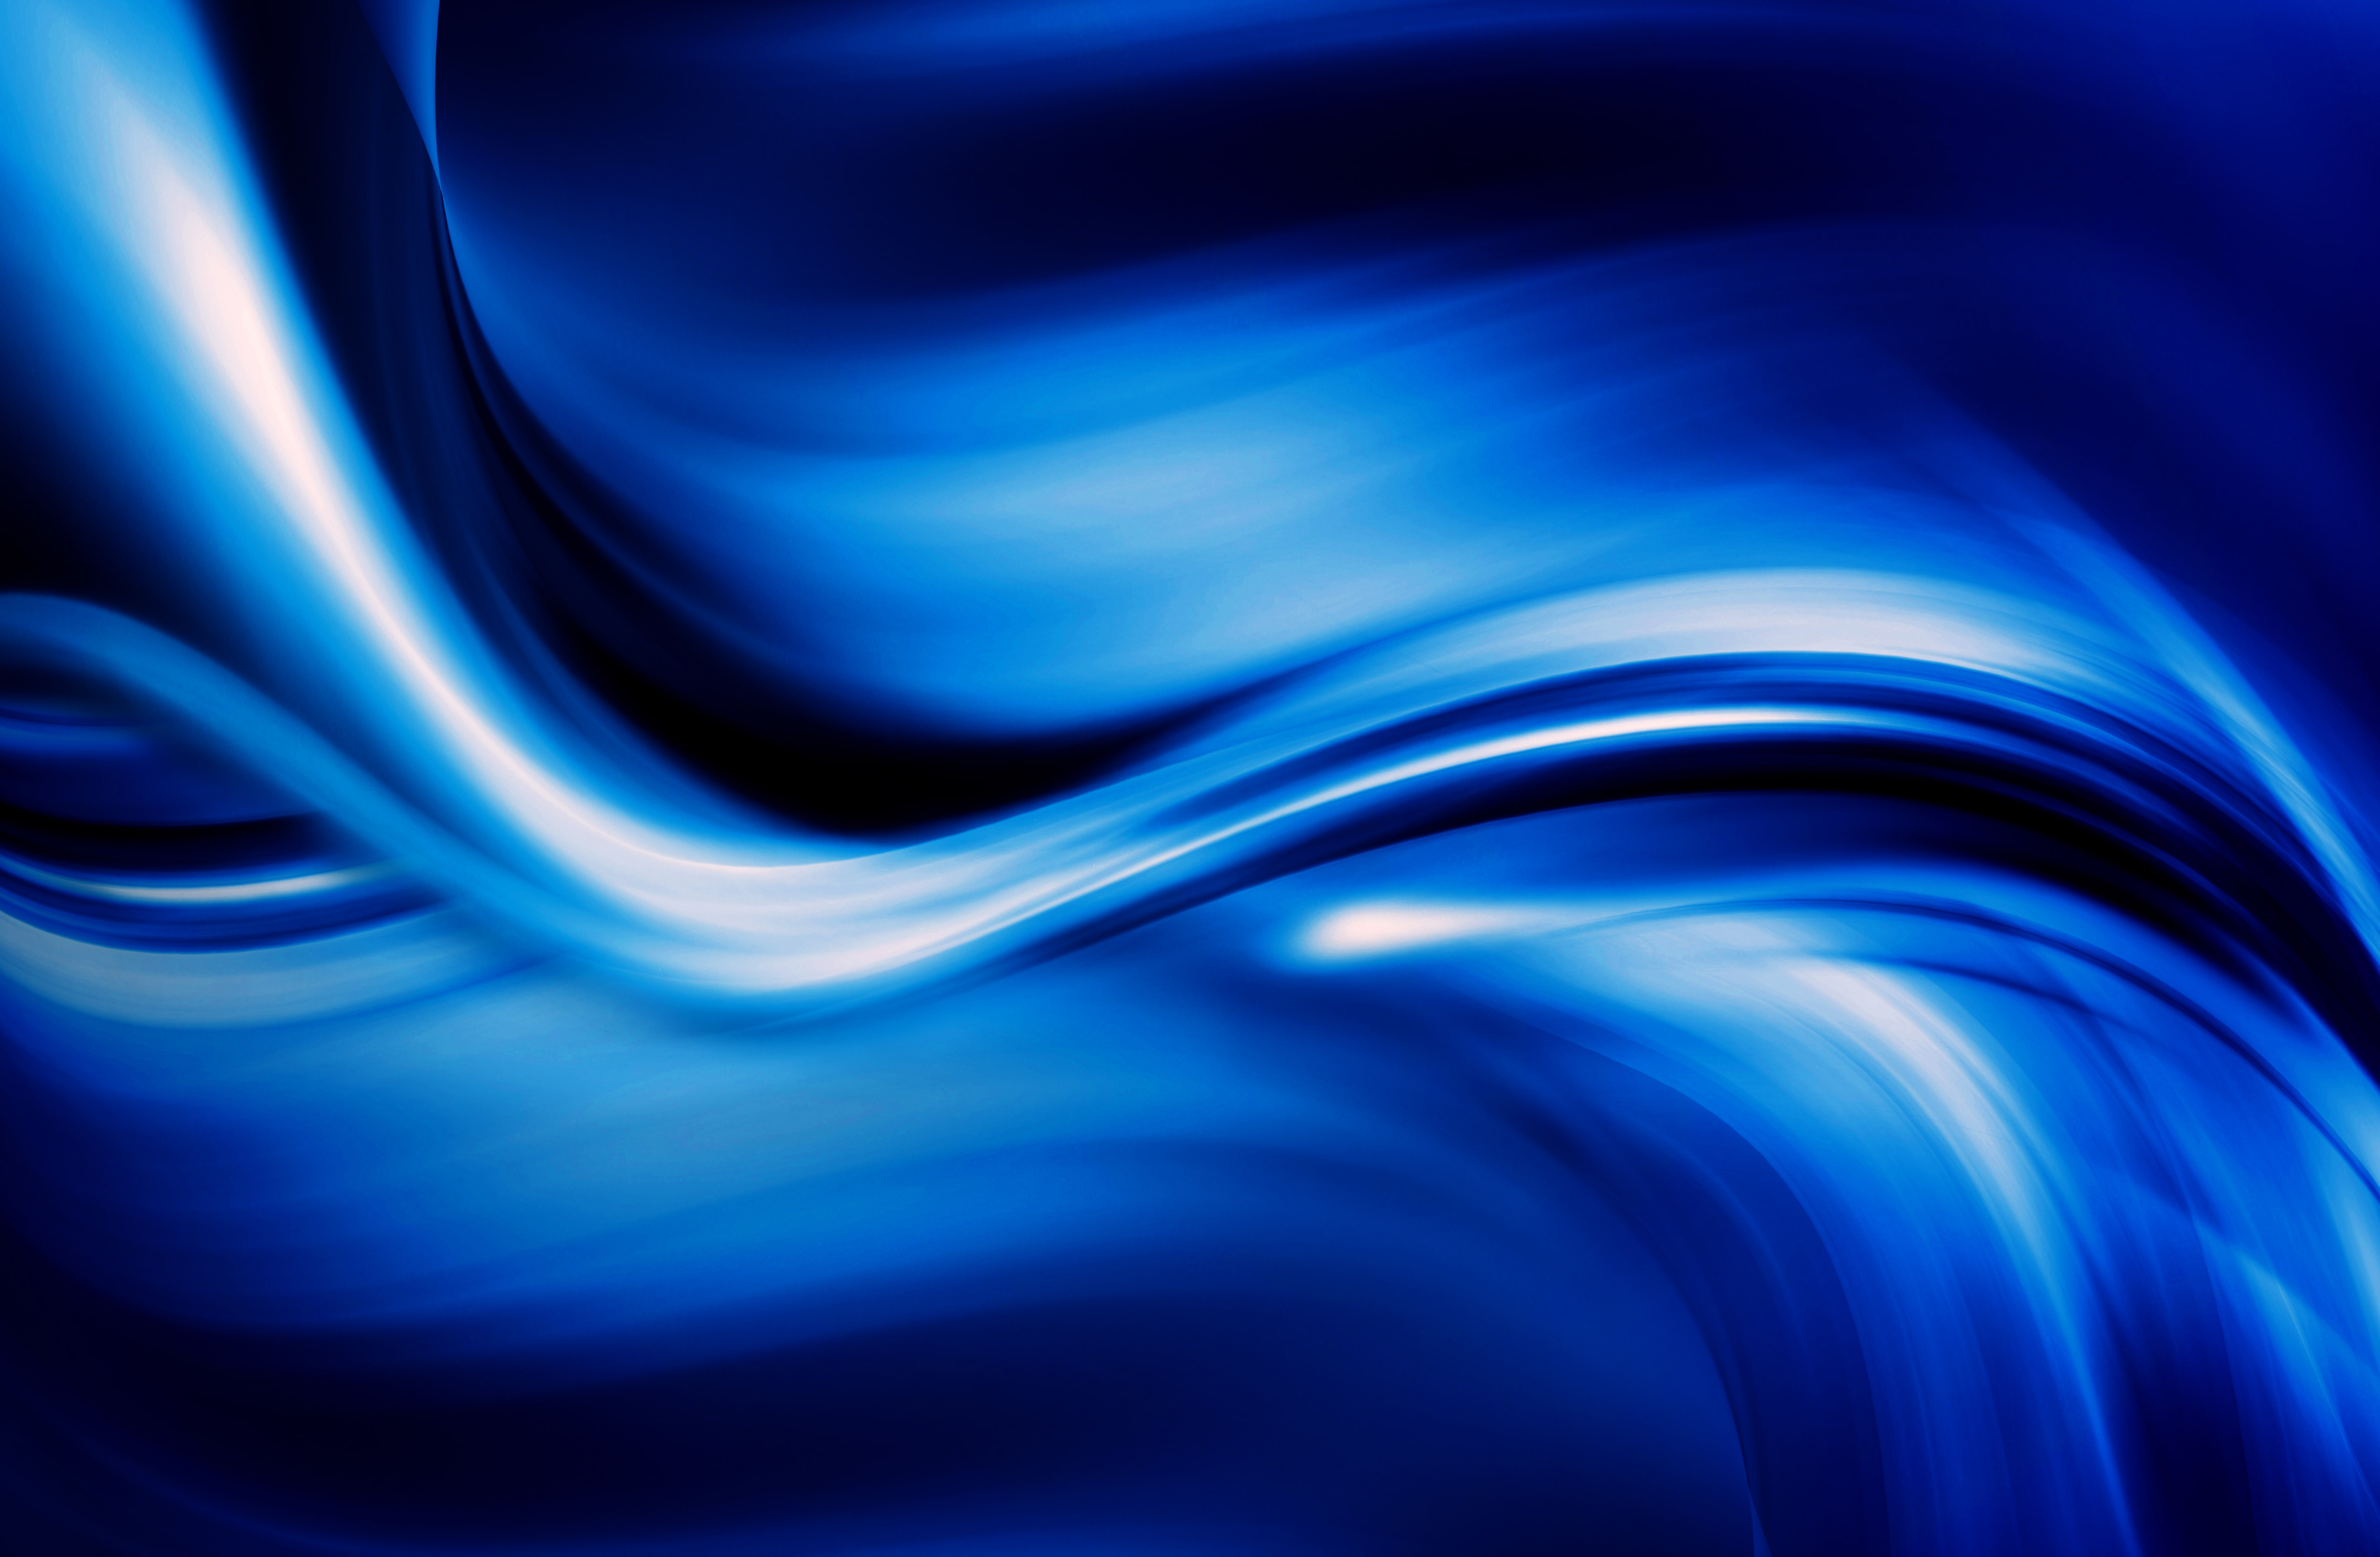 Another dark blue abstract background texture image www 5748x3760